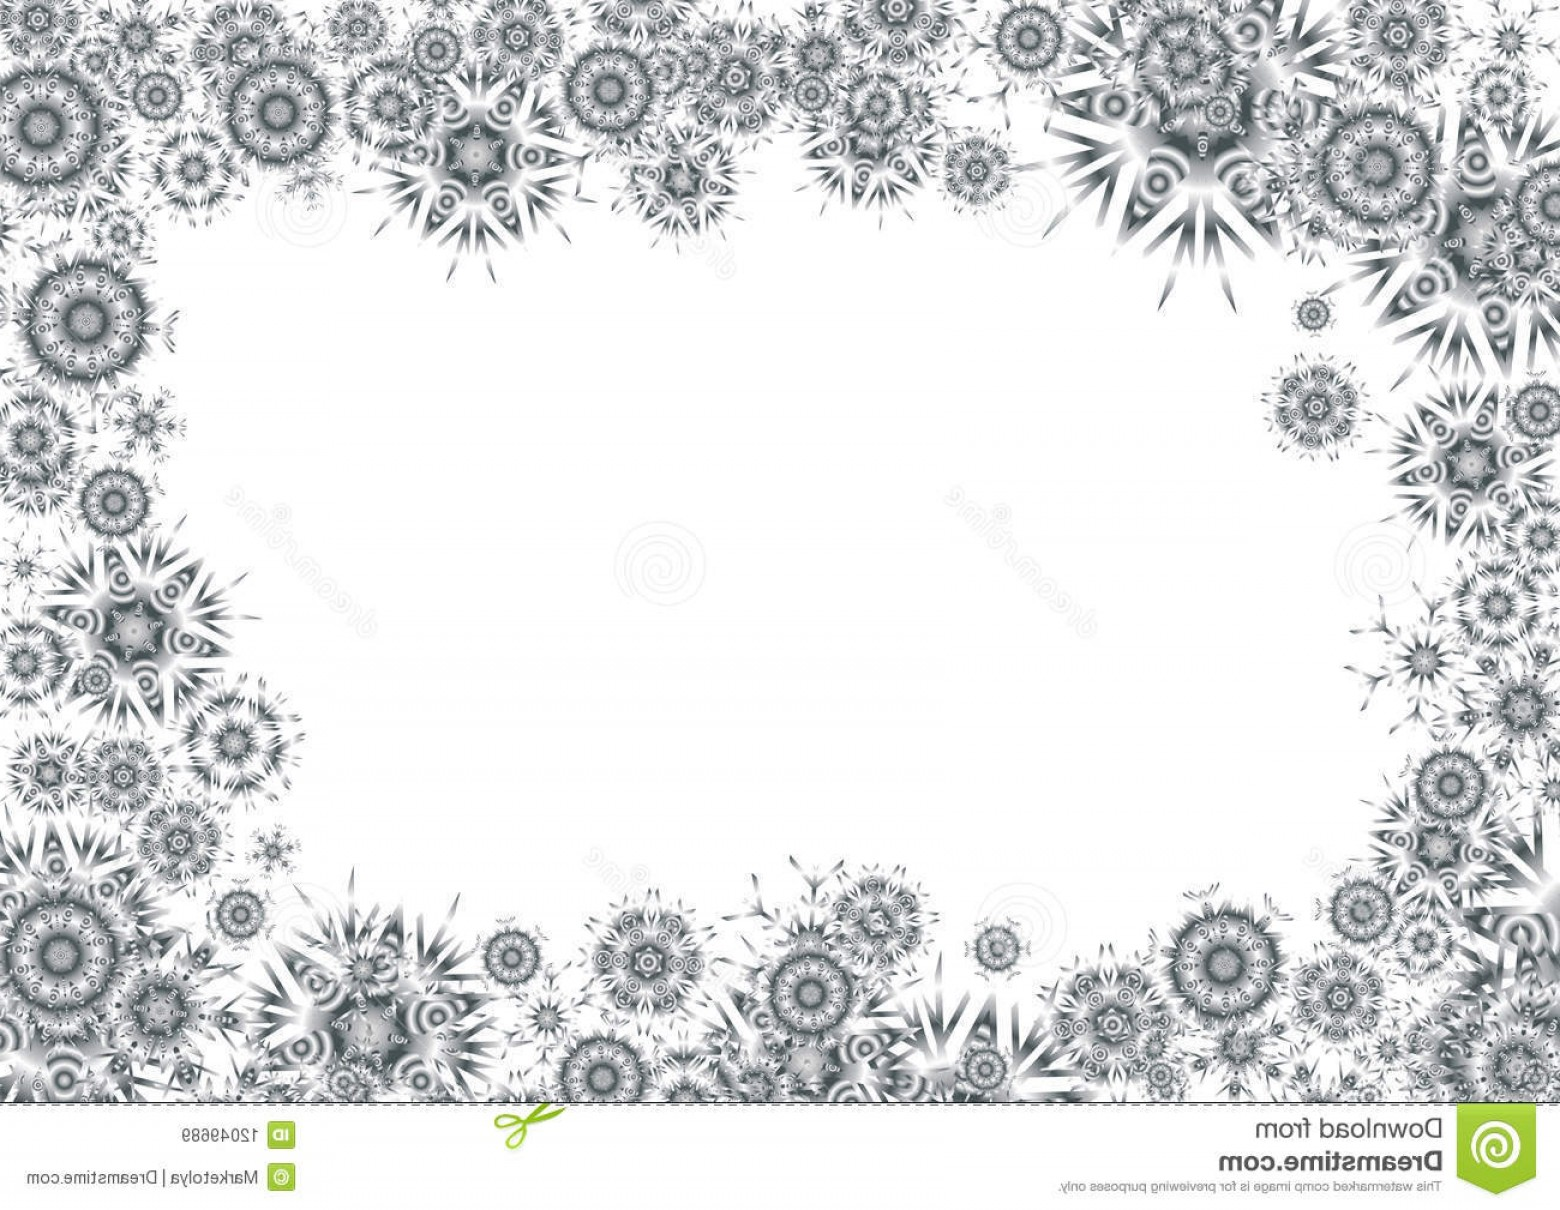 Vector-Based Grayscale Christmas: Royalty Free Stock Images Cosmic Grayscale Background Image